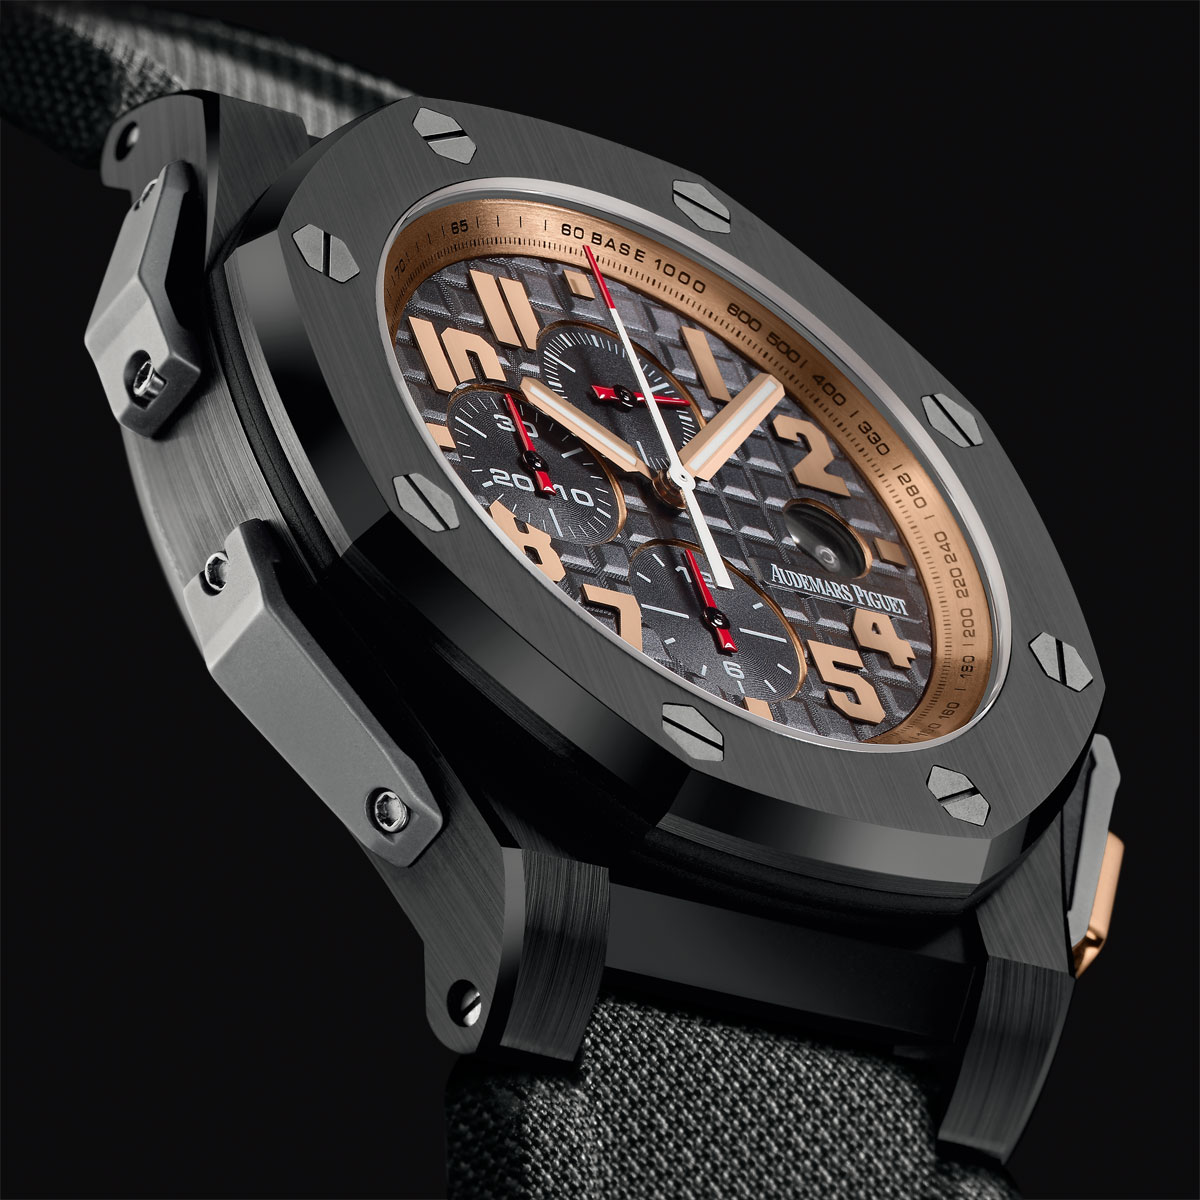 Audemars Piguet Royal Oak Offshore Arnold Replica Watches 02